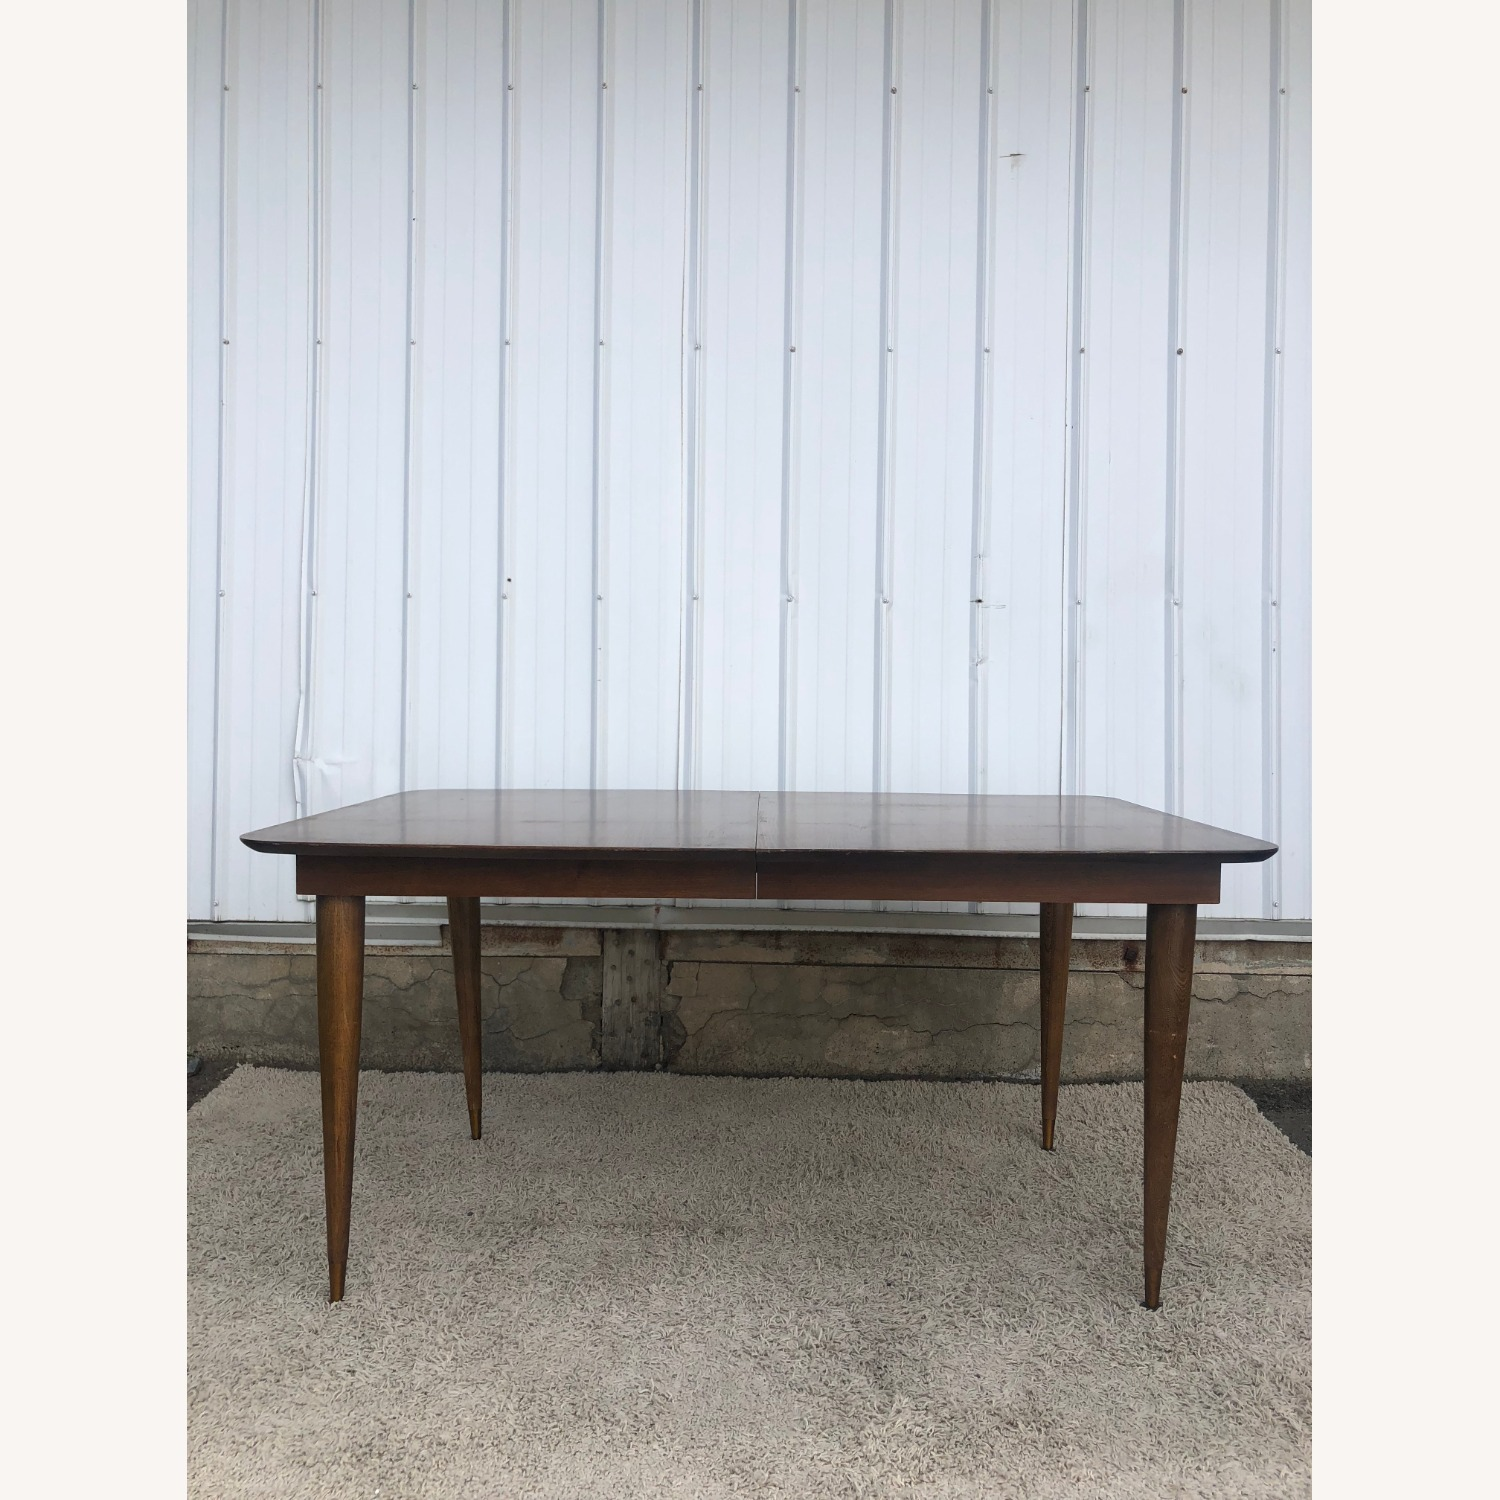 Mid Century Walnut Dining Table with One Leaf - image-1